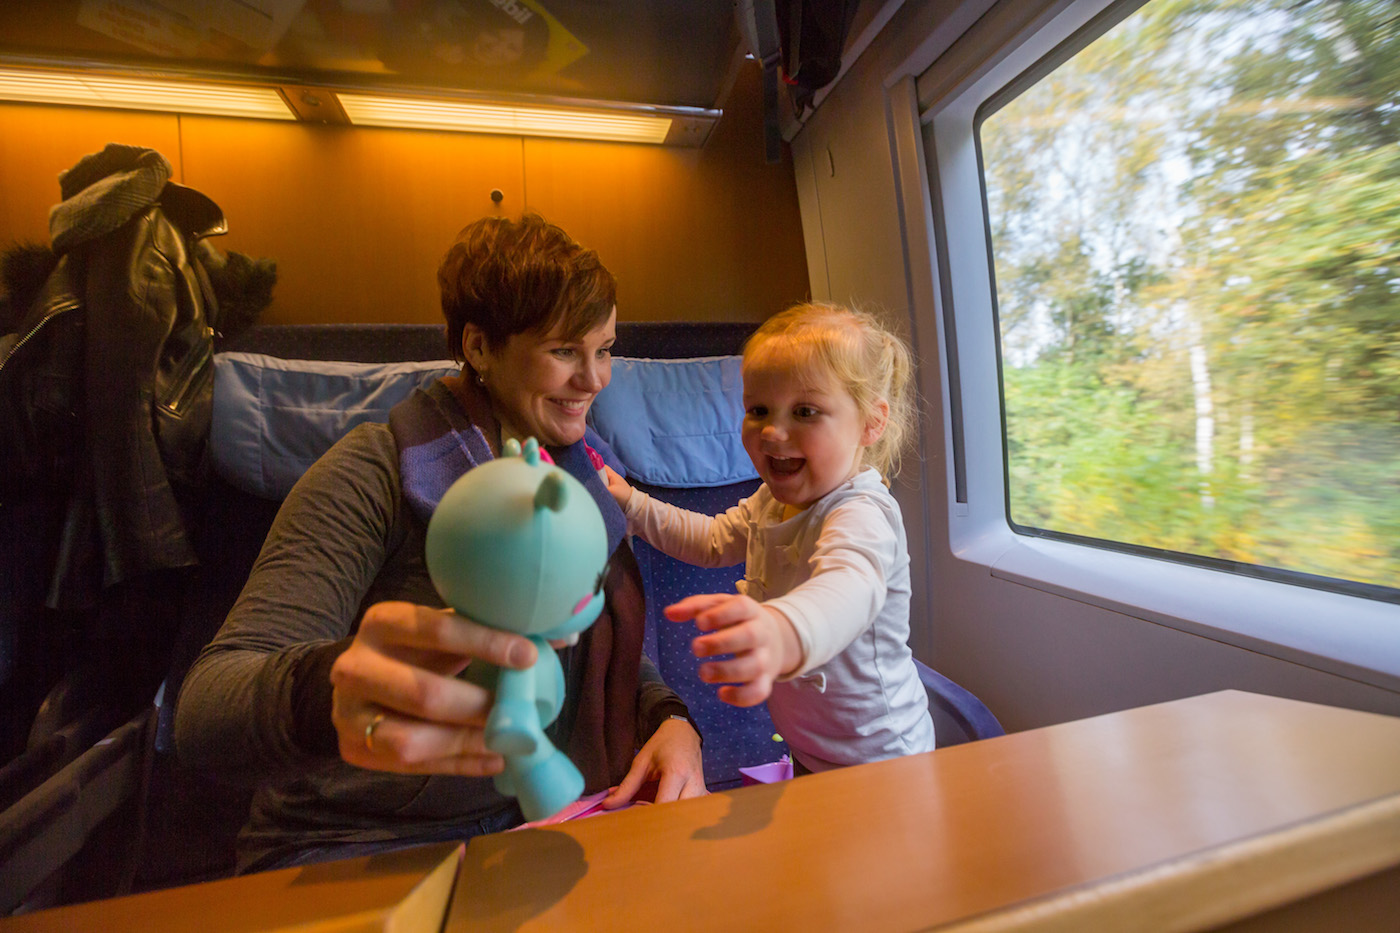 Interrail_Mother-and-daughter-playing-in-German-ICE-highspeed-train_